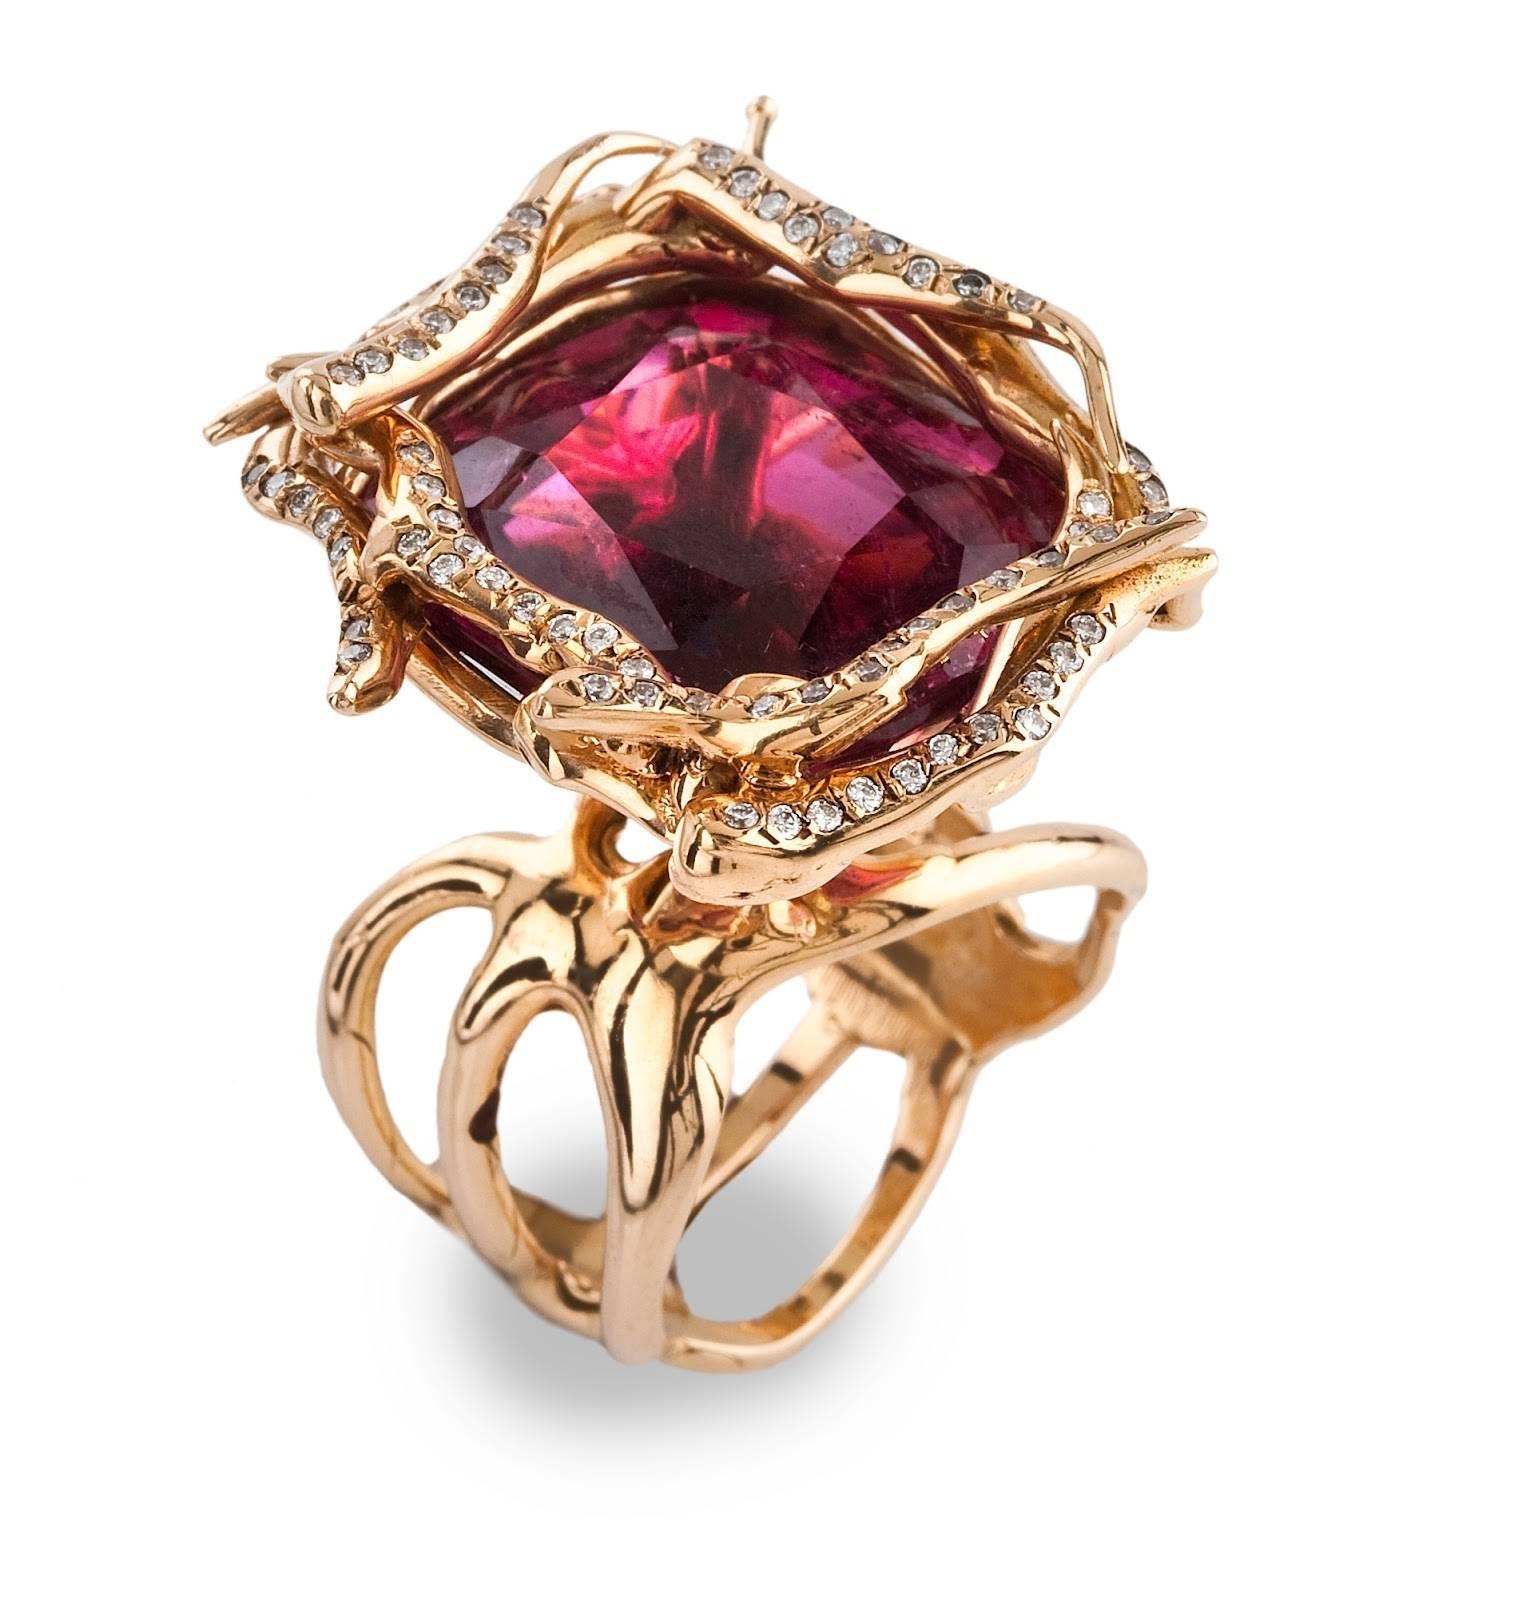 Rose Gold And Ruby Rings Lovely Jewelry News Network Tie The Knot Within Tie The Knot Engagement Rings (View 10 of 15)